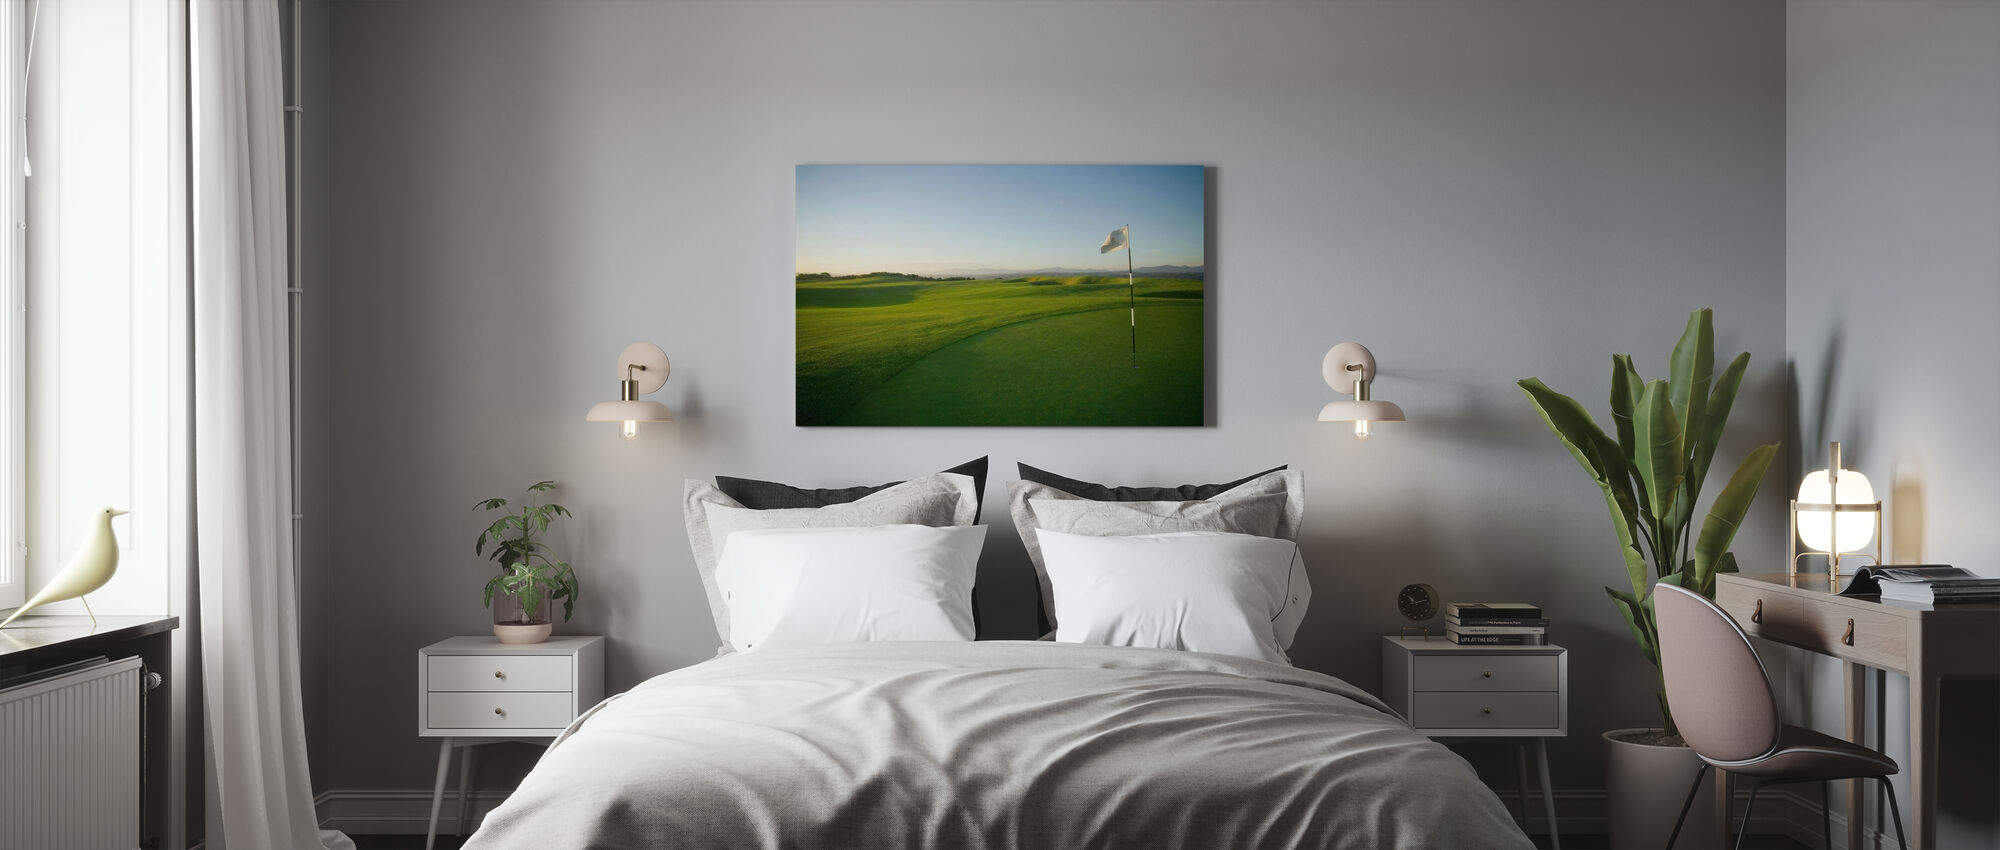 South African Golf Course - Canvas print - Bedroom